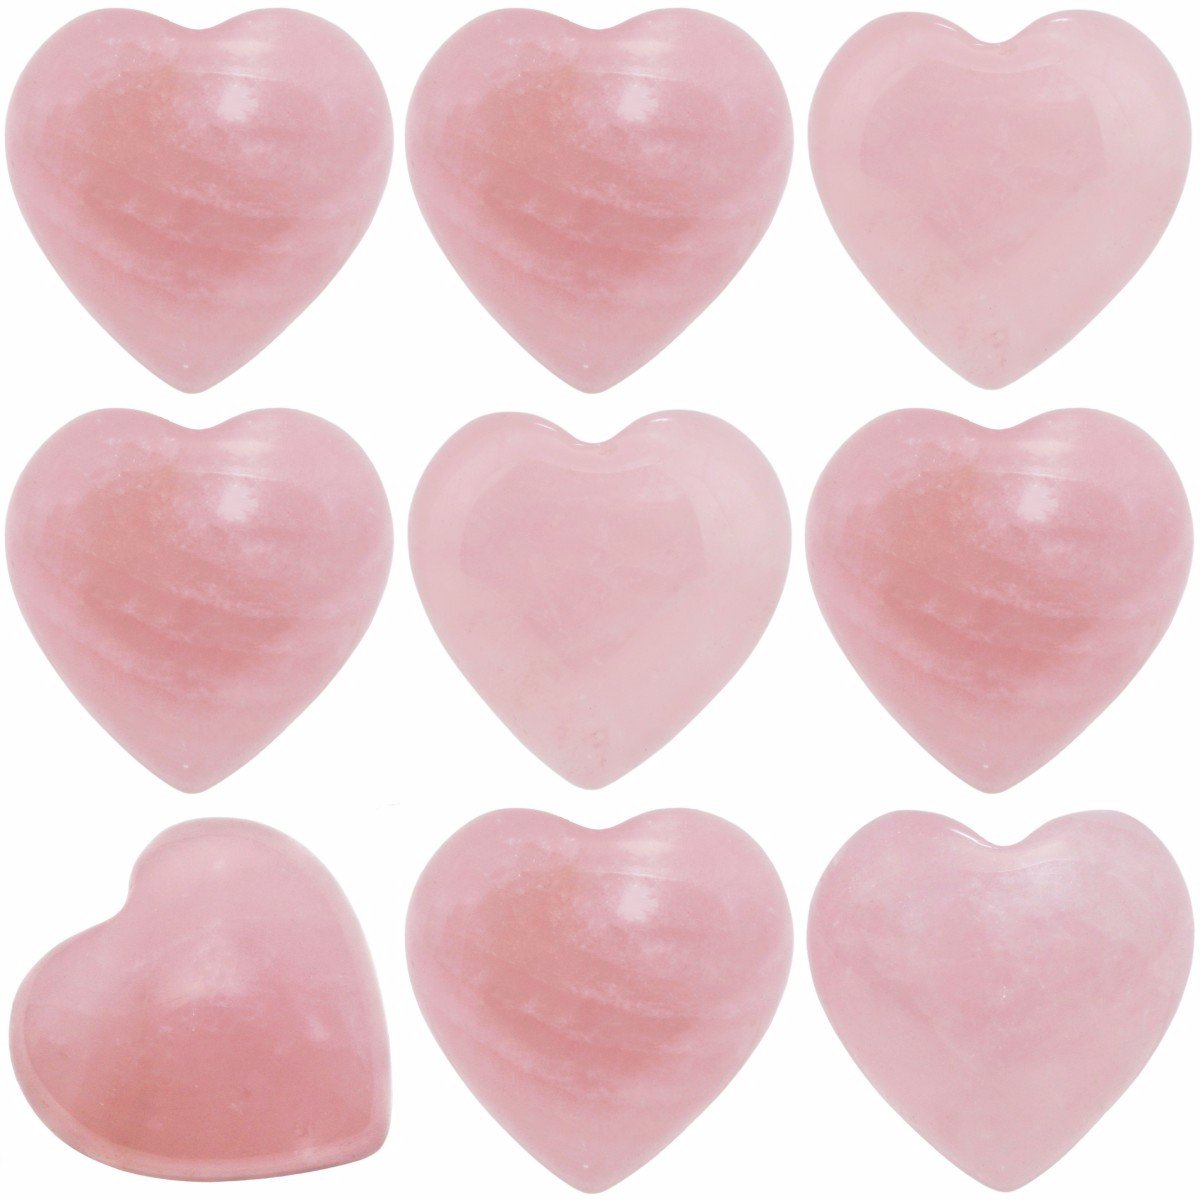 SUNYIK Natural Rose Quartz Pocket Mini Puff Heart Worry Healing Palm Stone Pack of 10(0.5'') by SUNYIK